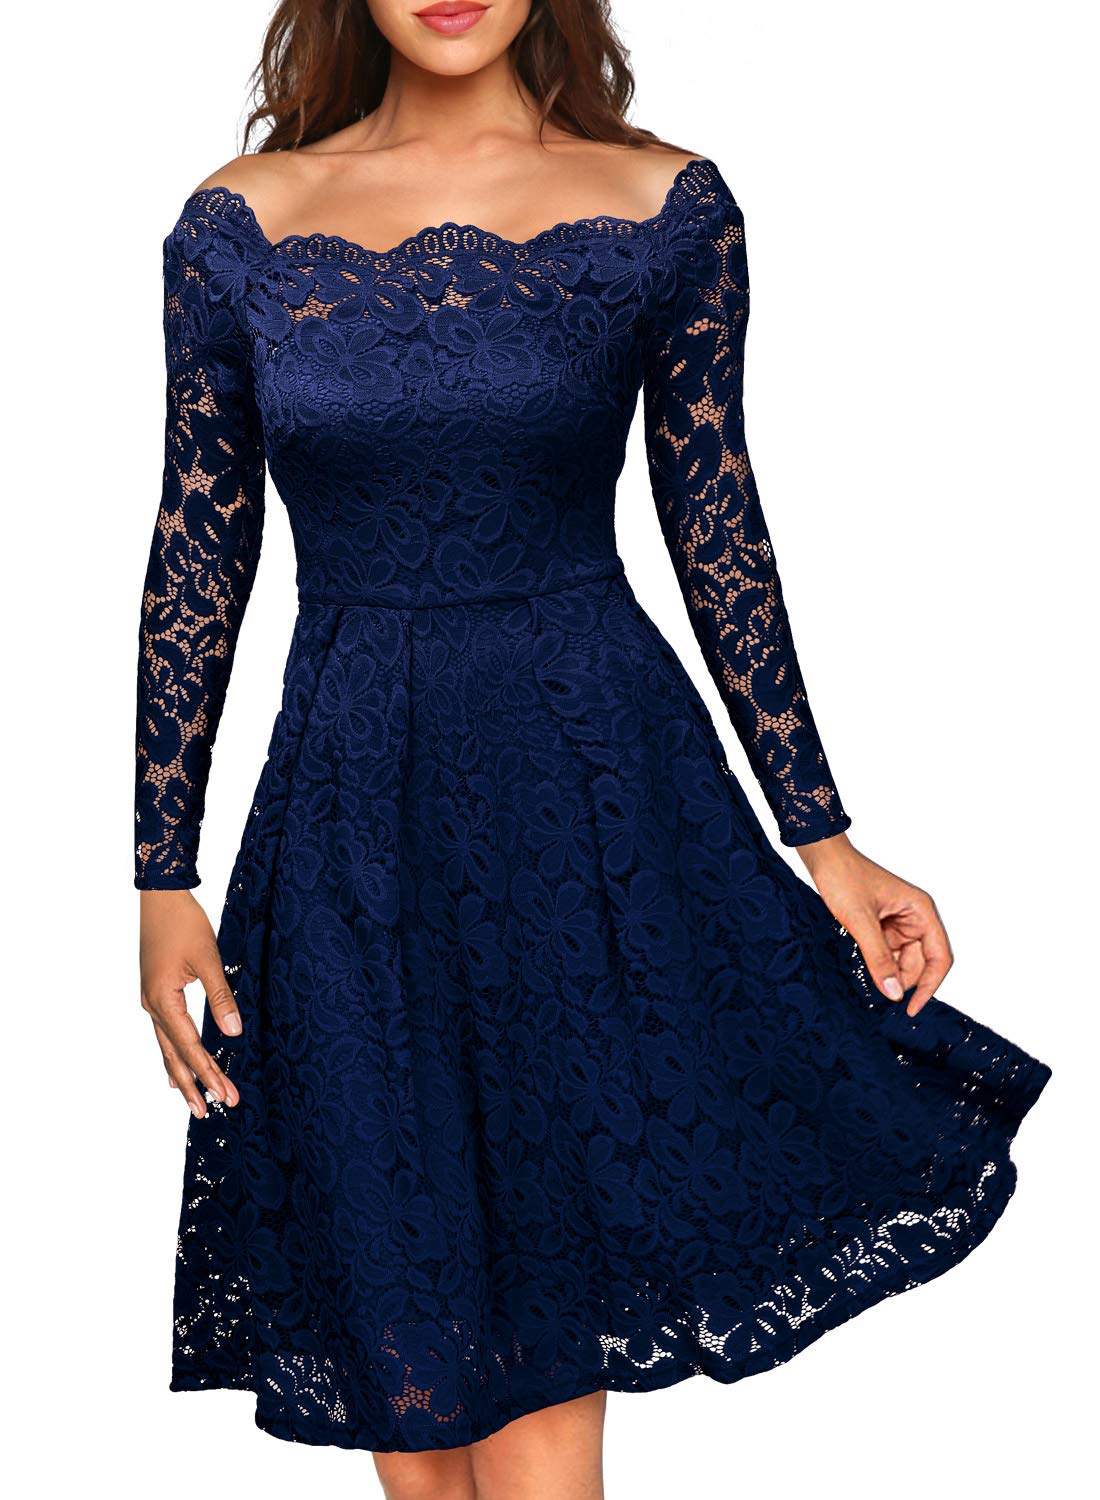 Party Dresses - Women's Vintage Floral Lace Long Sleeve Boat Neck Cocktail Party Swing Dress